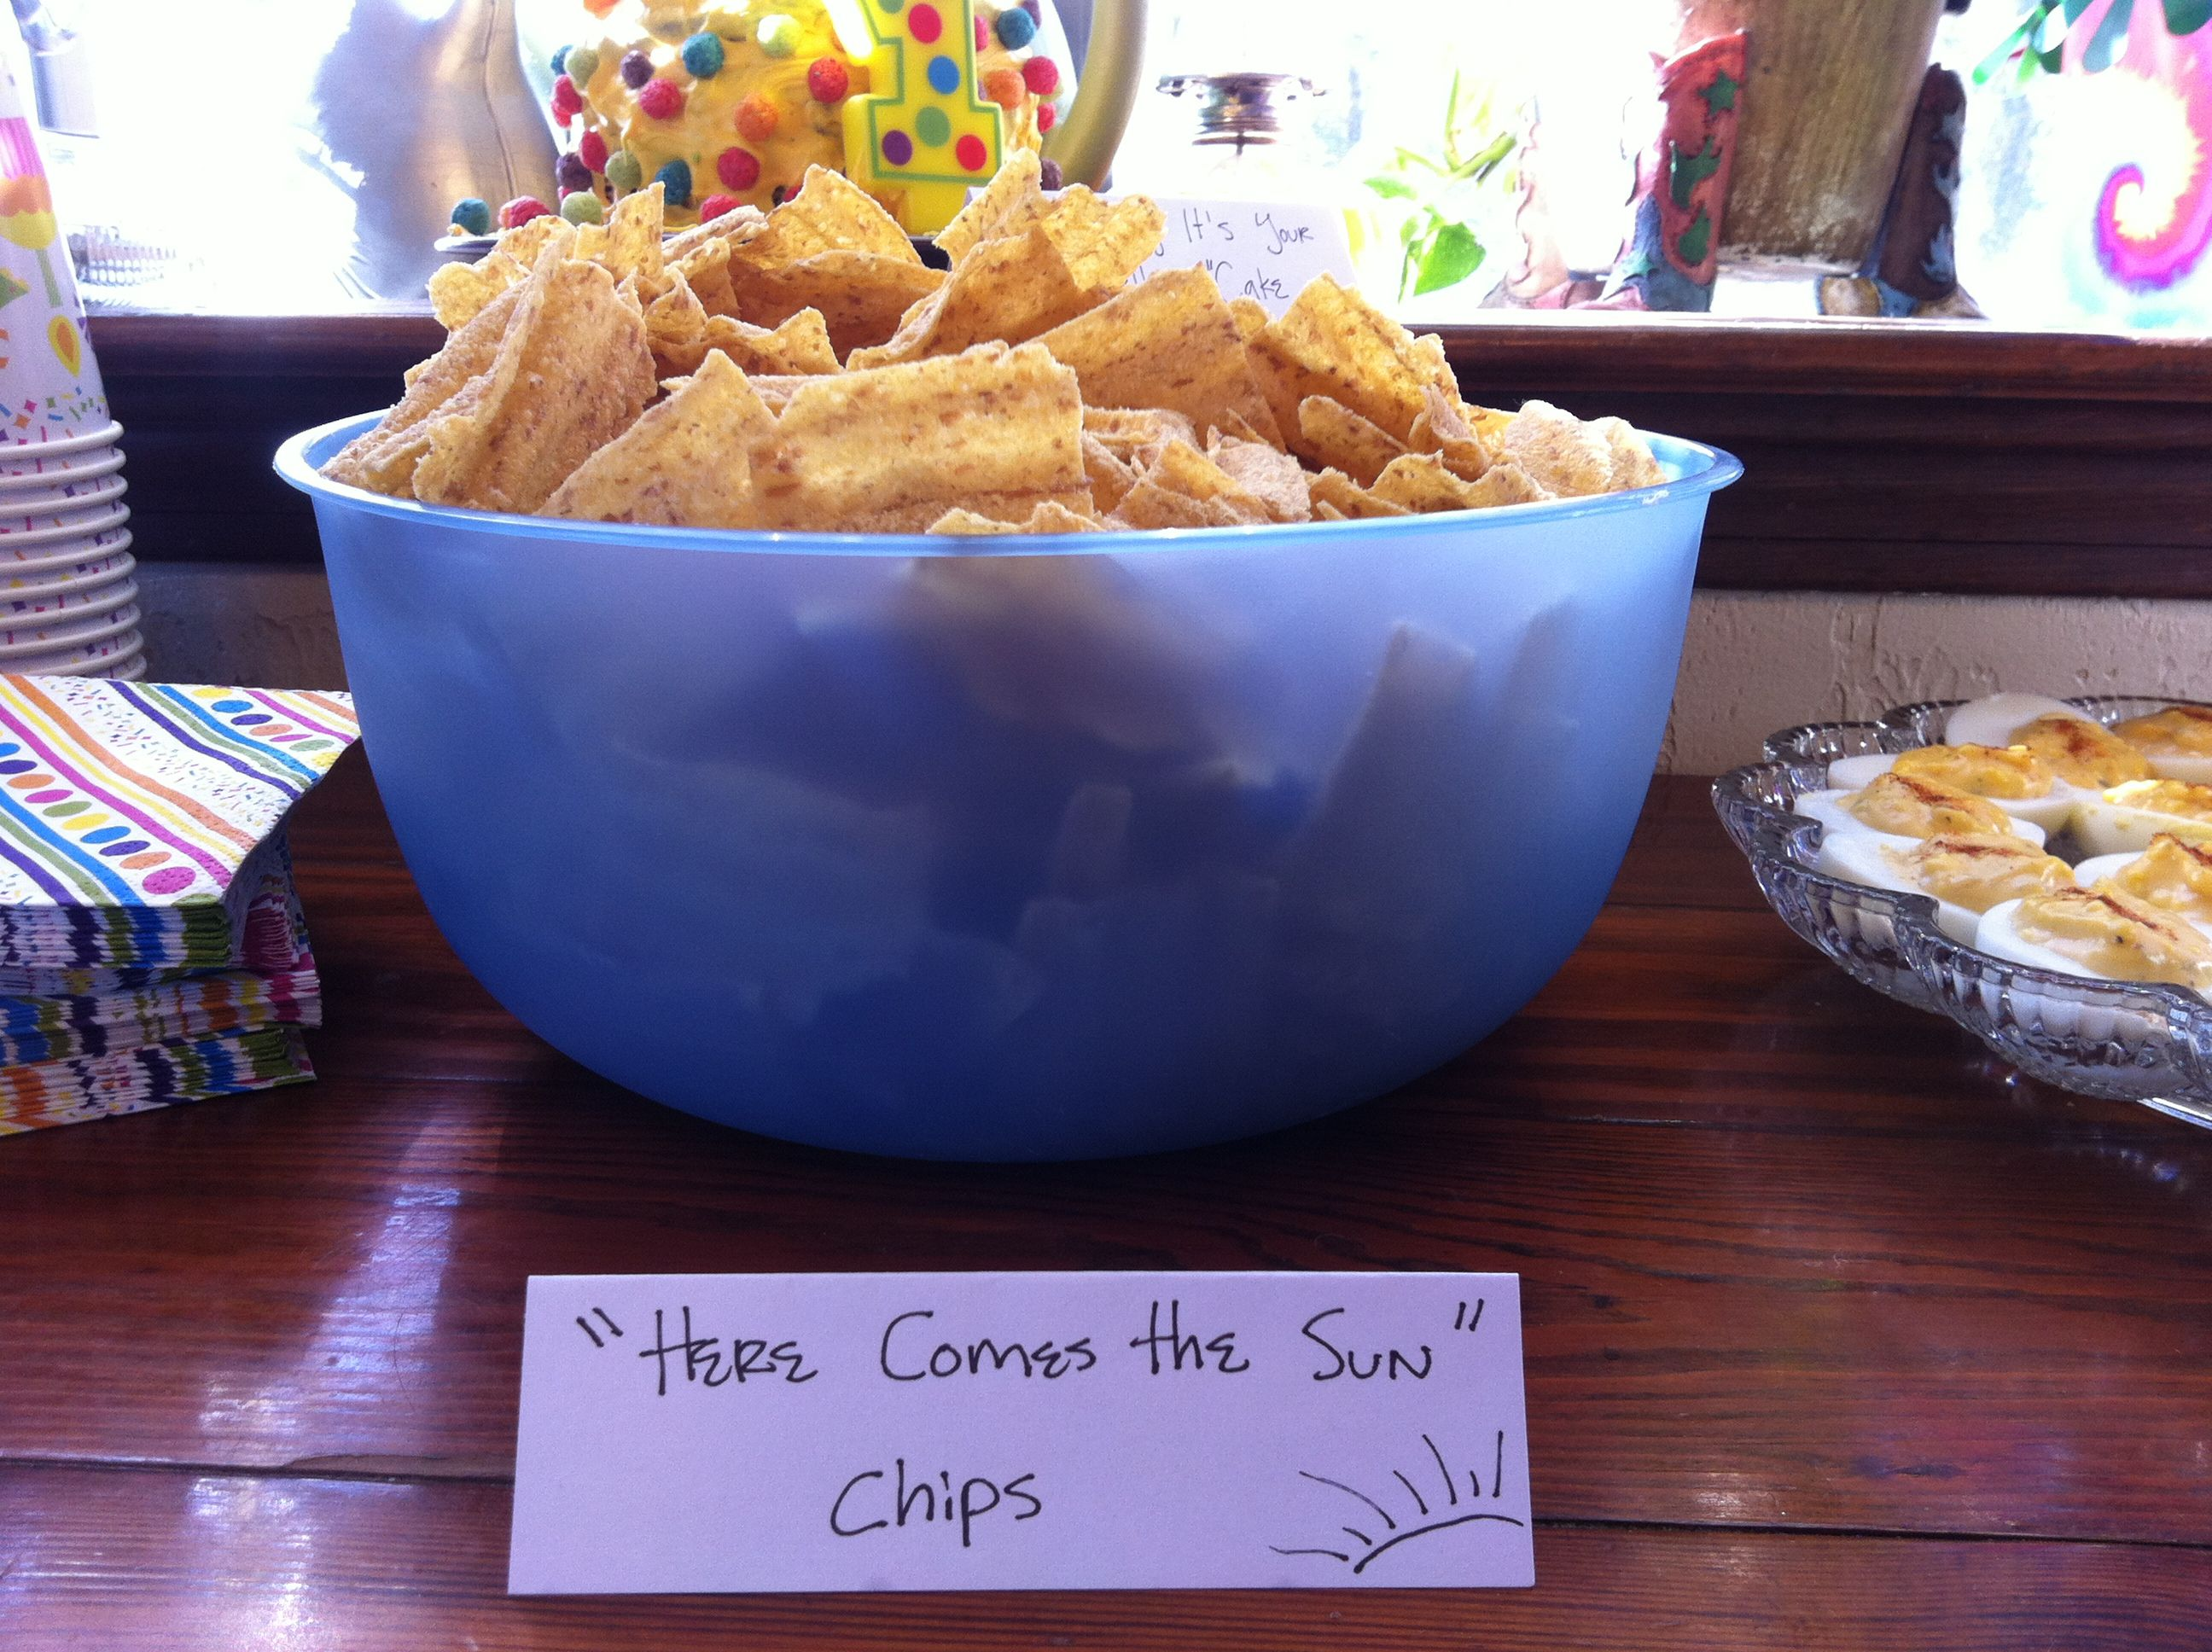 Gmail themes beatles - Beatles Theme Party Food Ideas Here Comes The Sun Chips